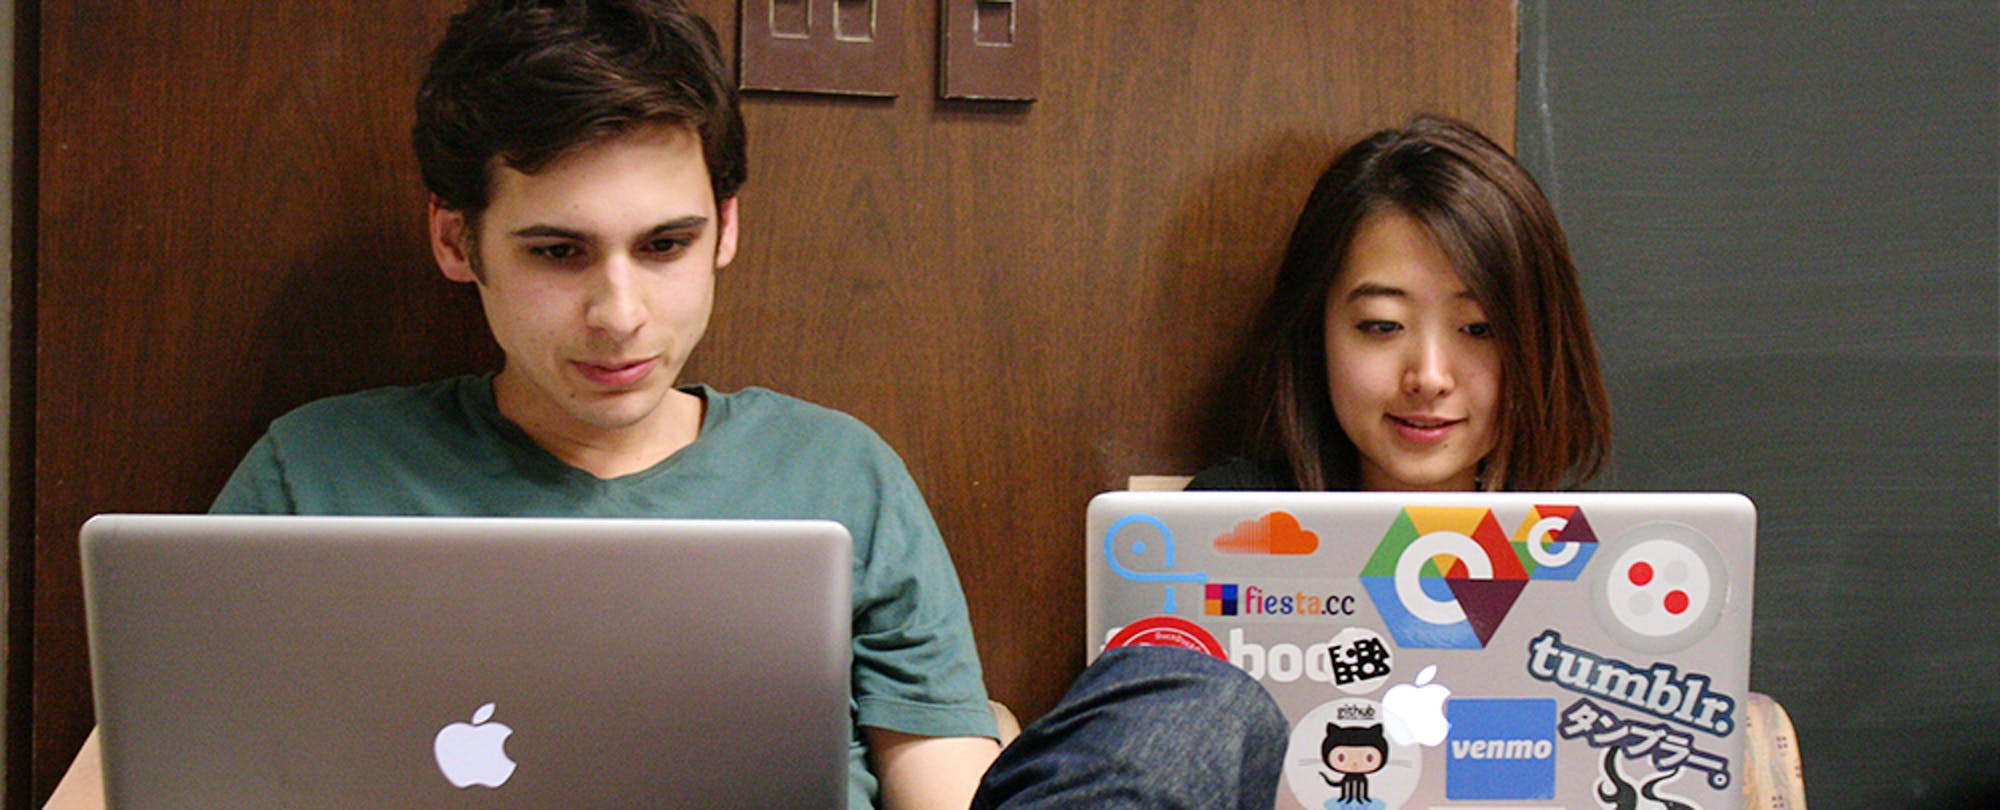 A Beginner's Guide to Bringing Coding Into the Classroom